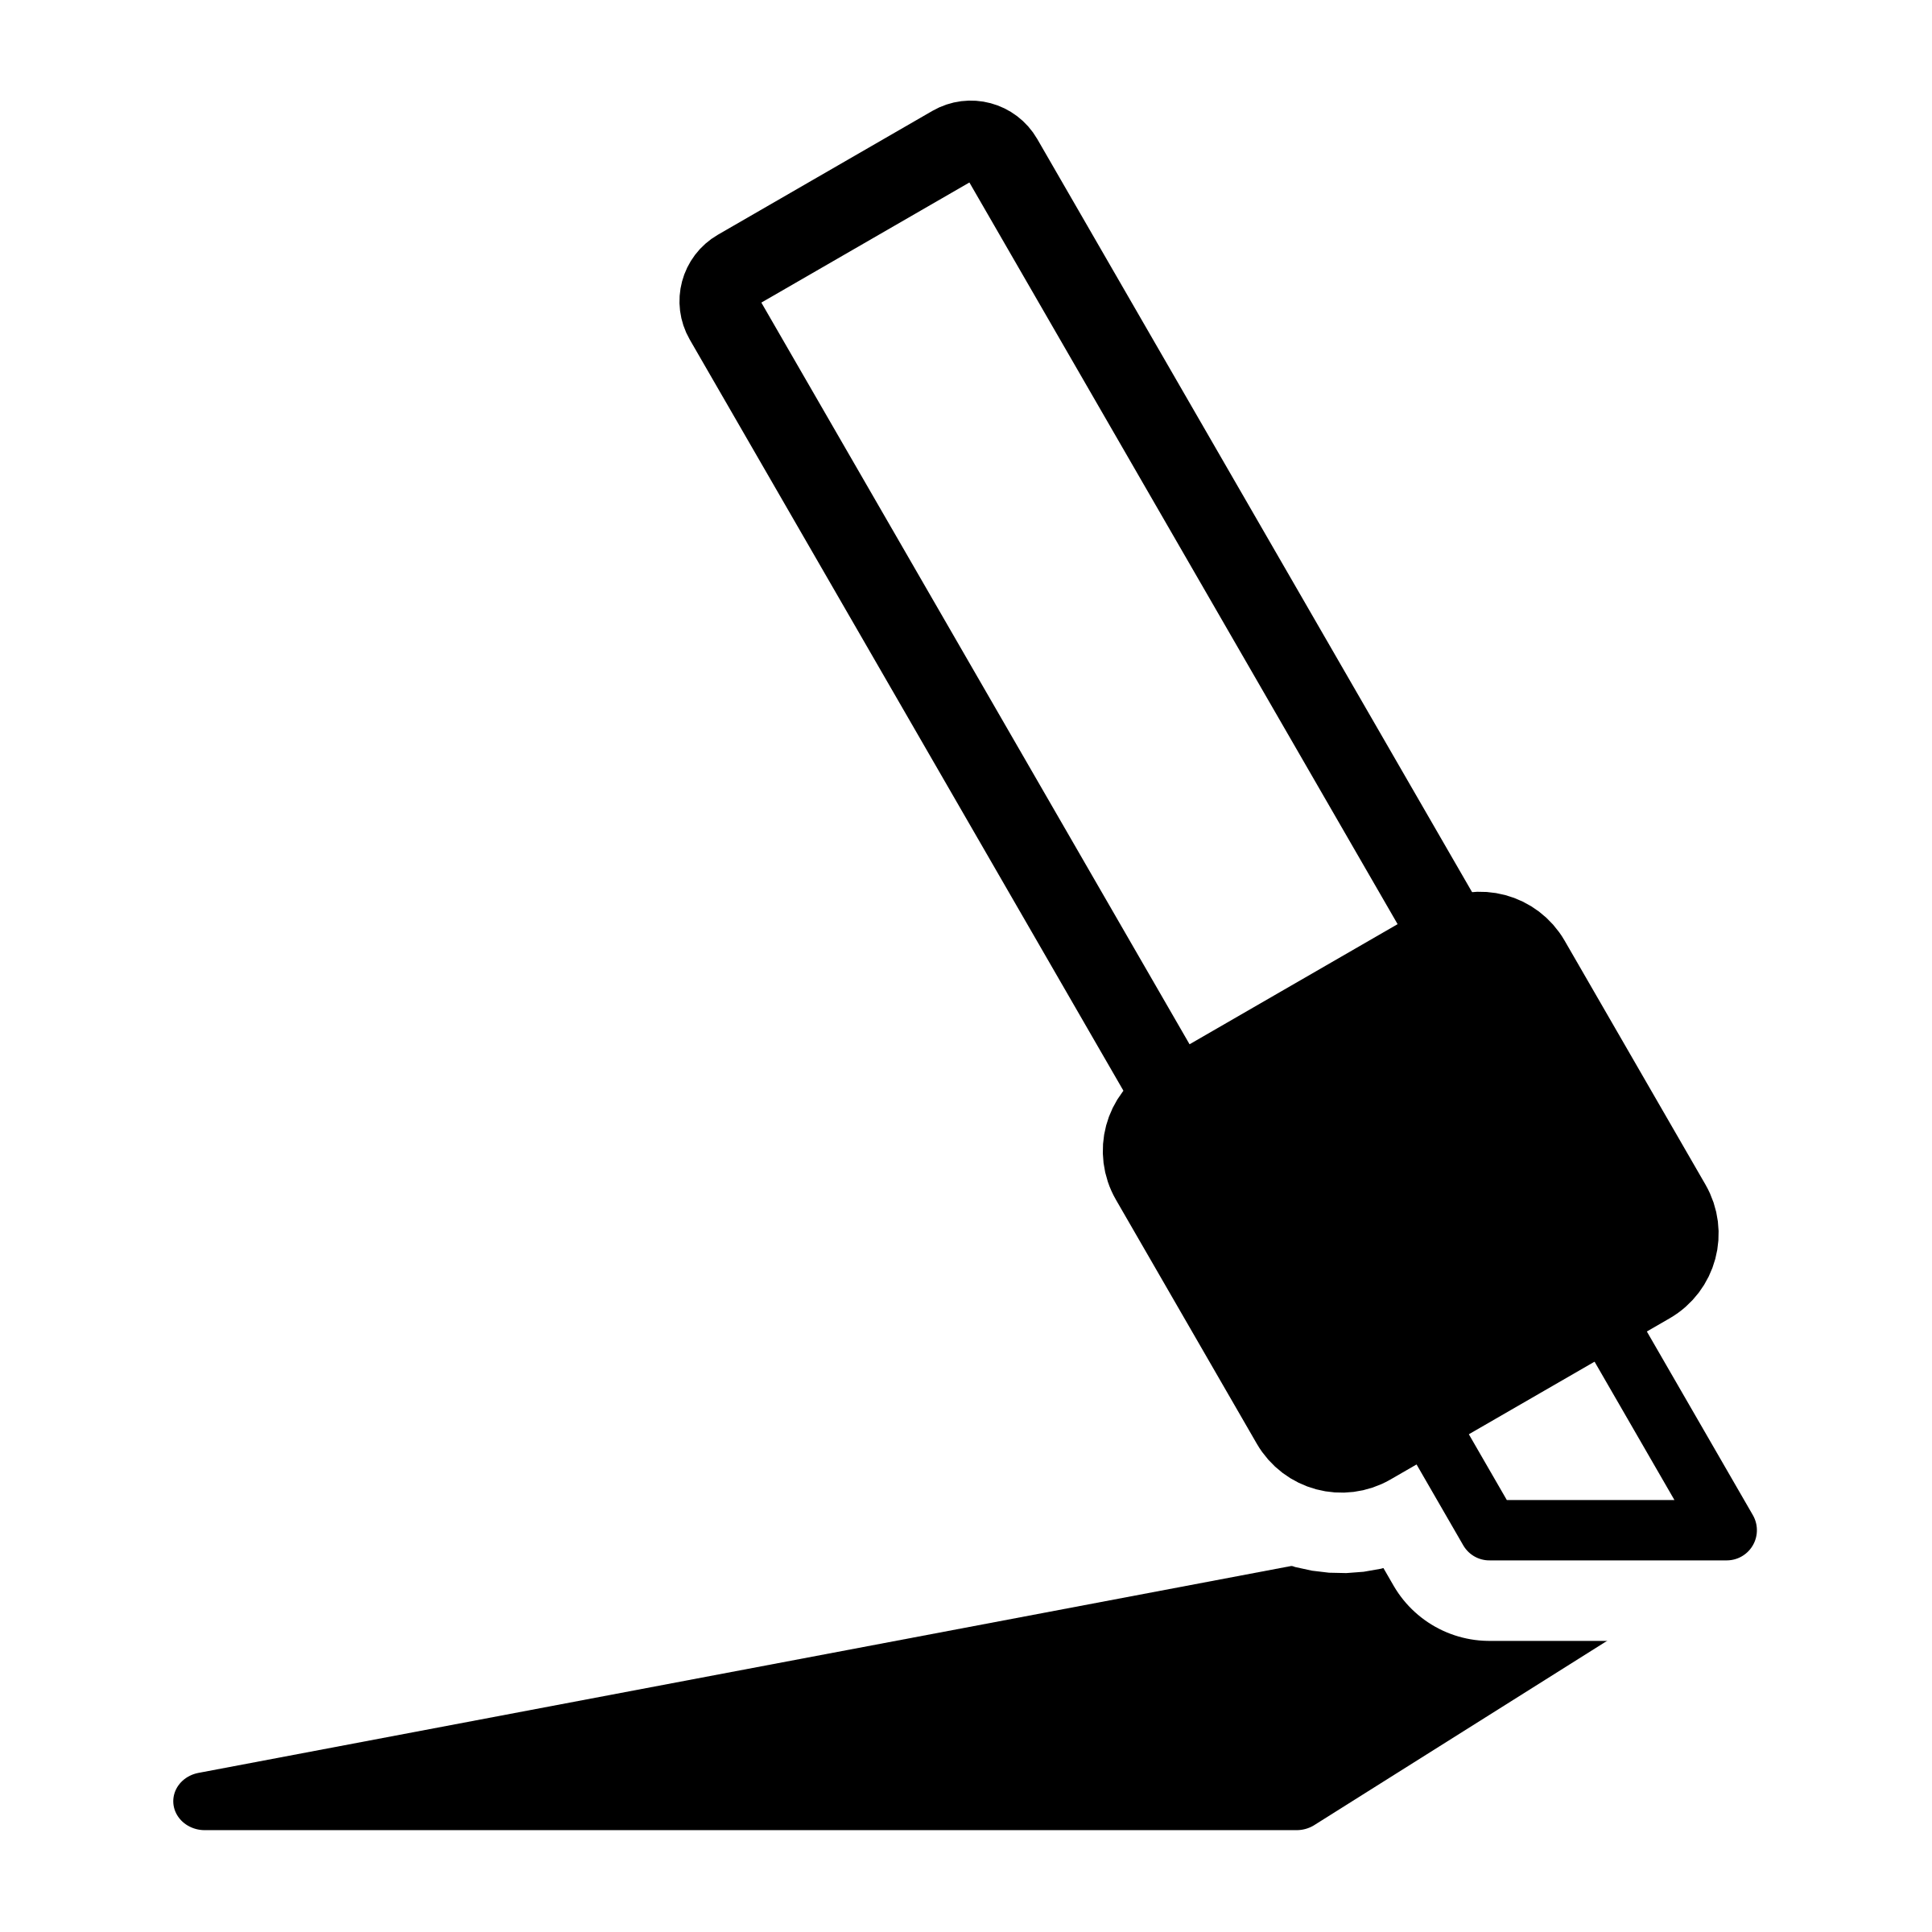 Mono tool icons png. Clipboard clipart pen